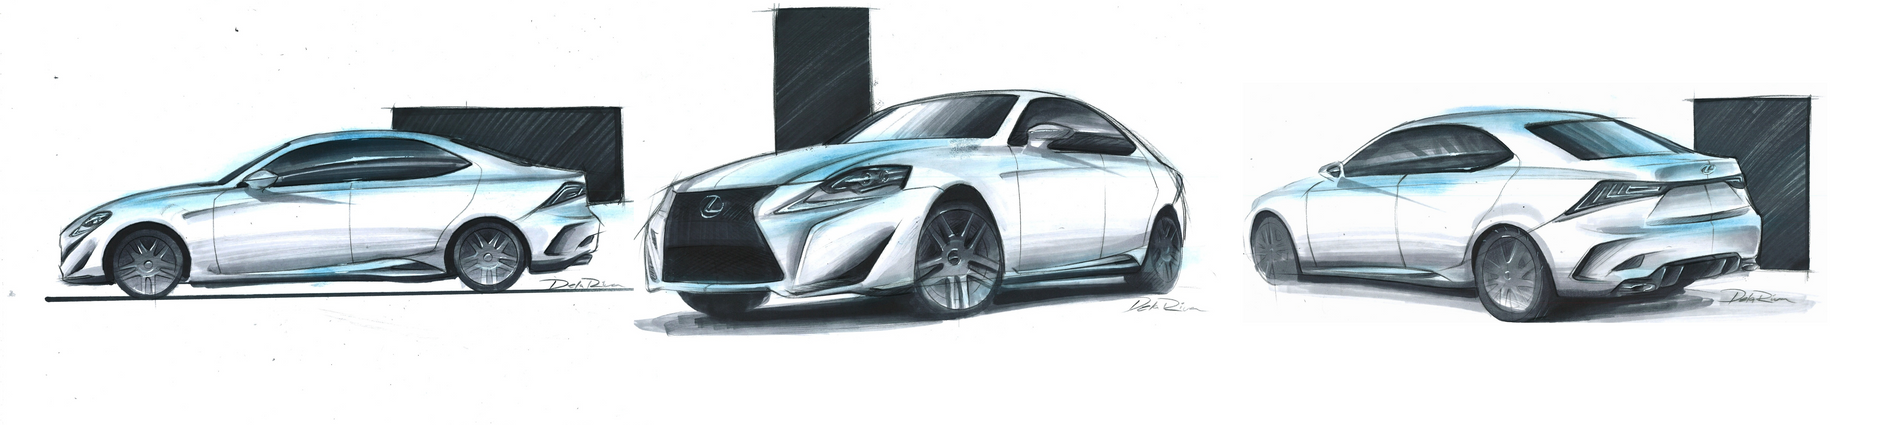 Lexus Final!! by wierd0